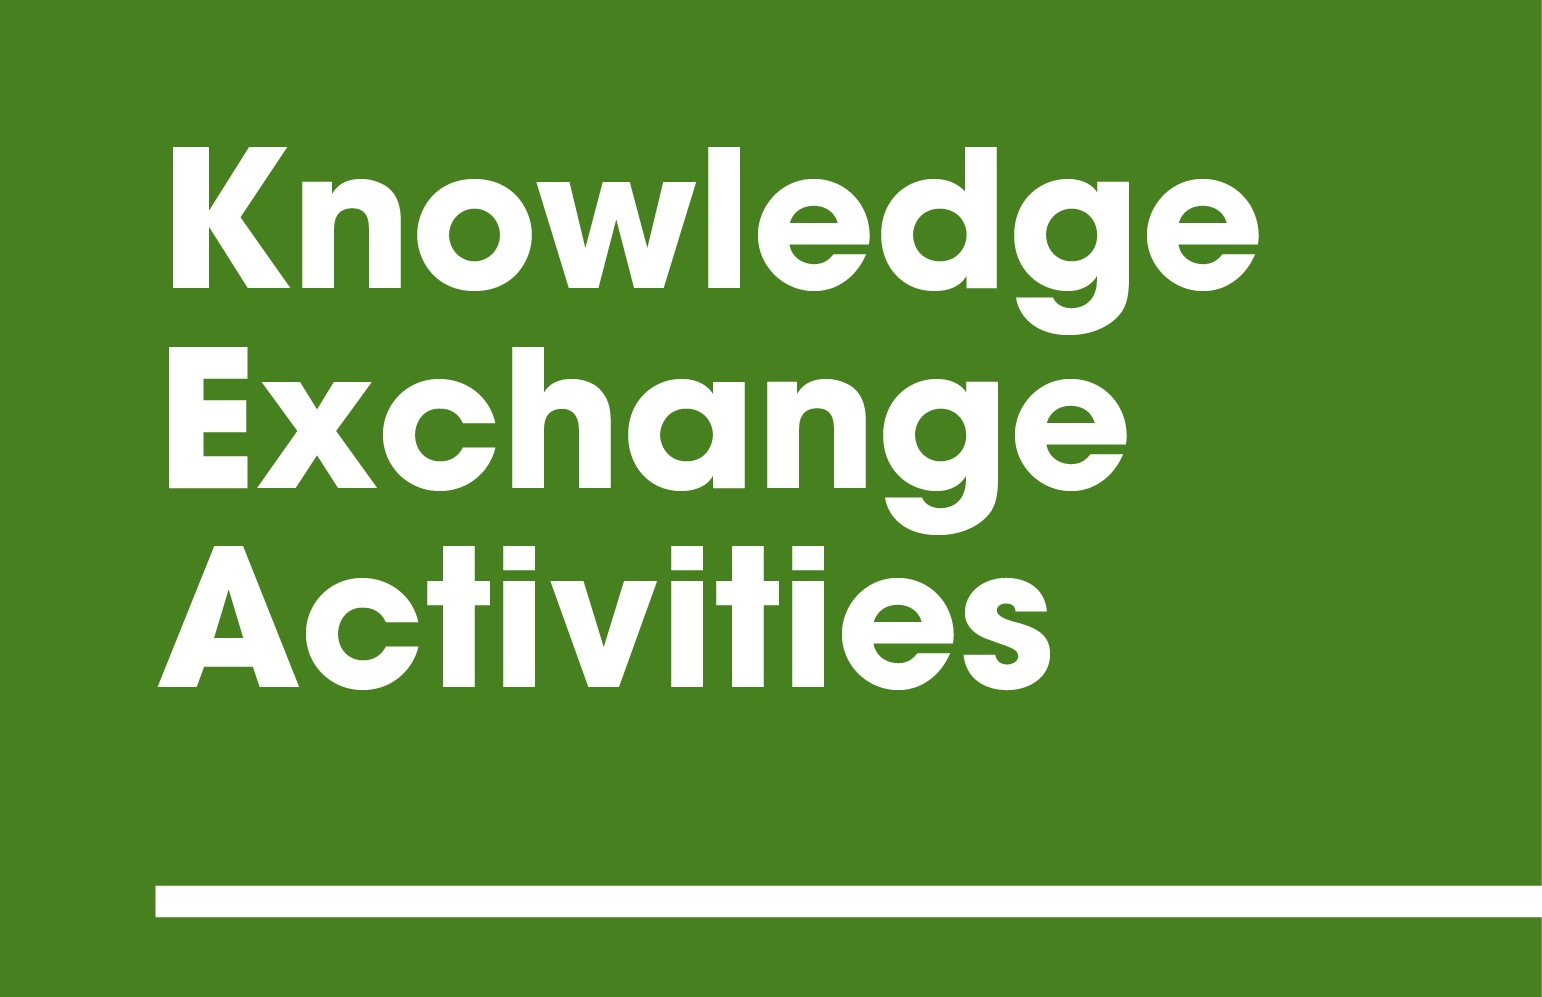 Knowledge Exchange Activities